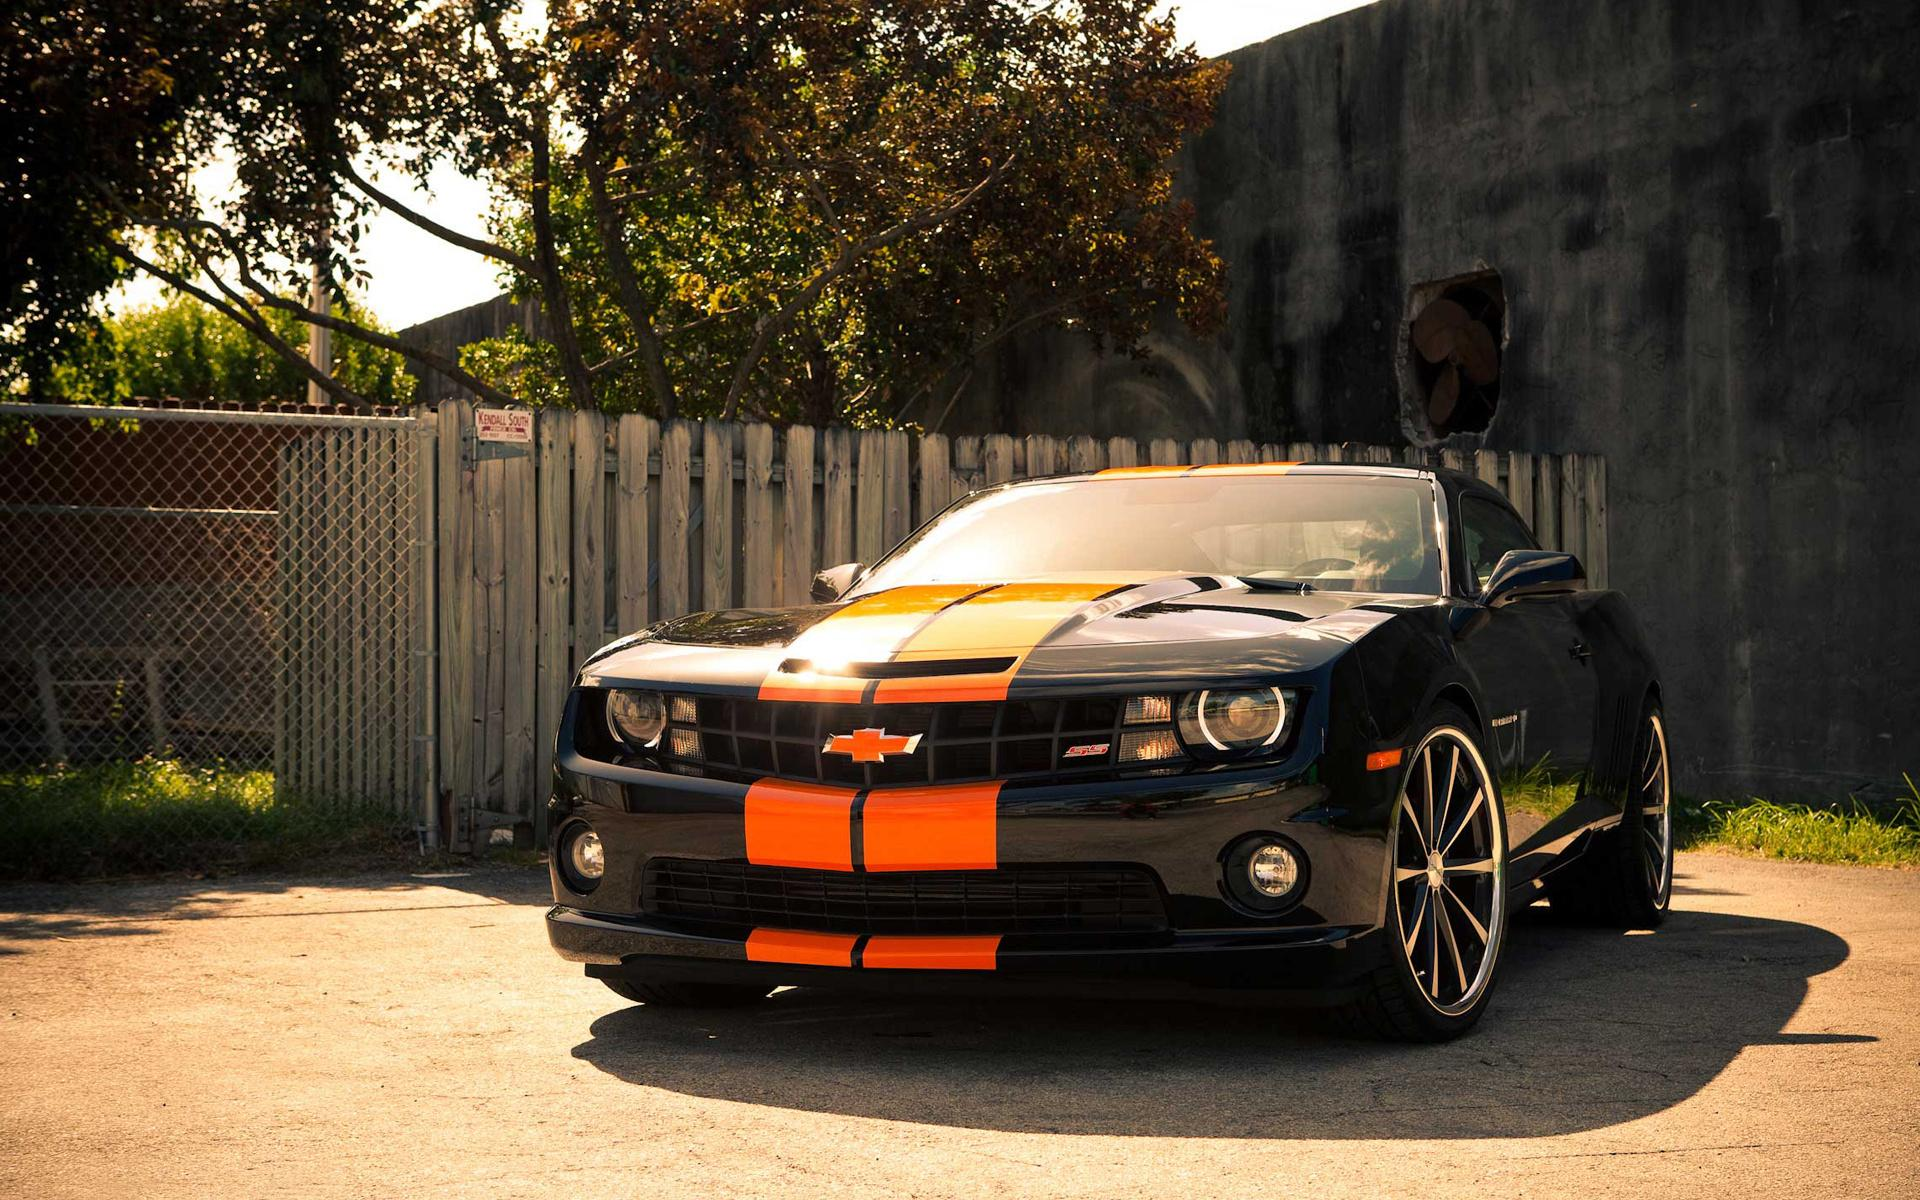 Chevrolet Camaro Ss Wallpaper Hd Car Wallpapers Id 2964